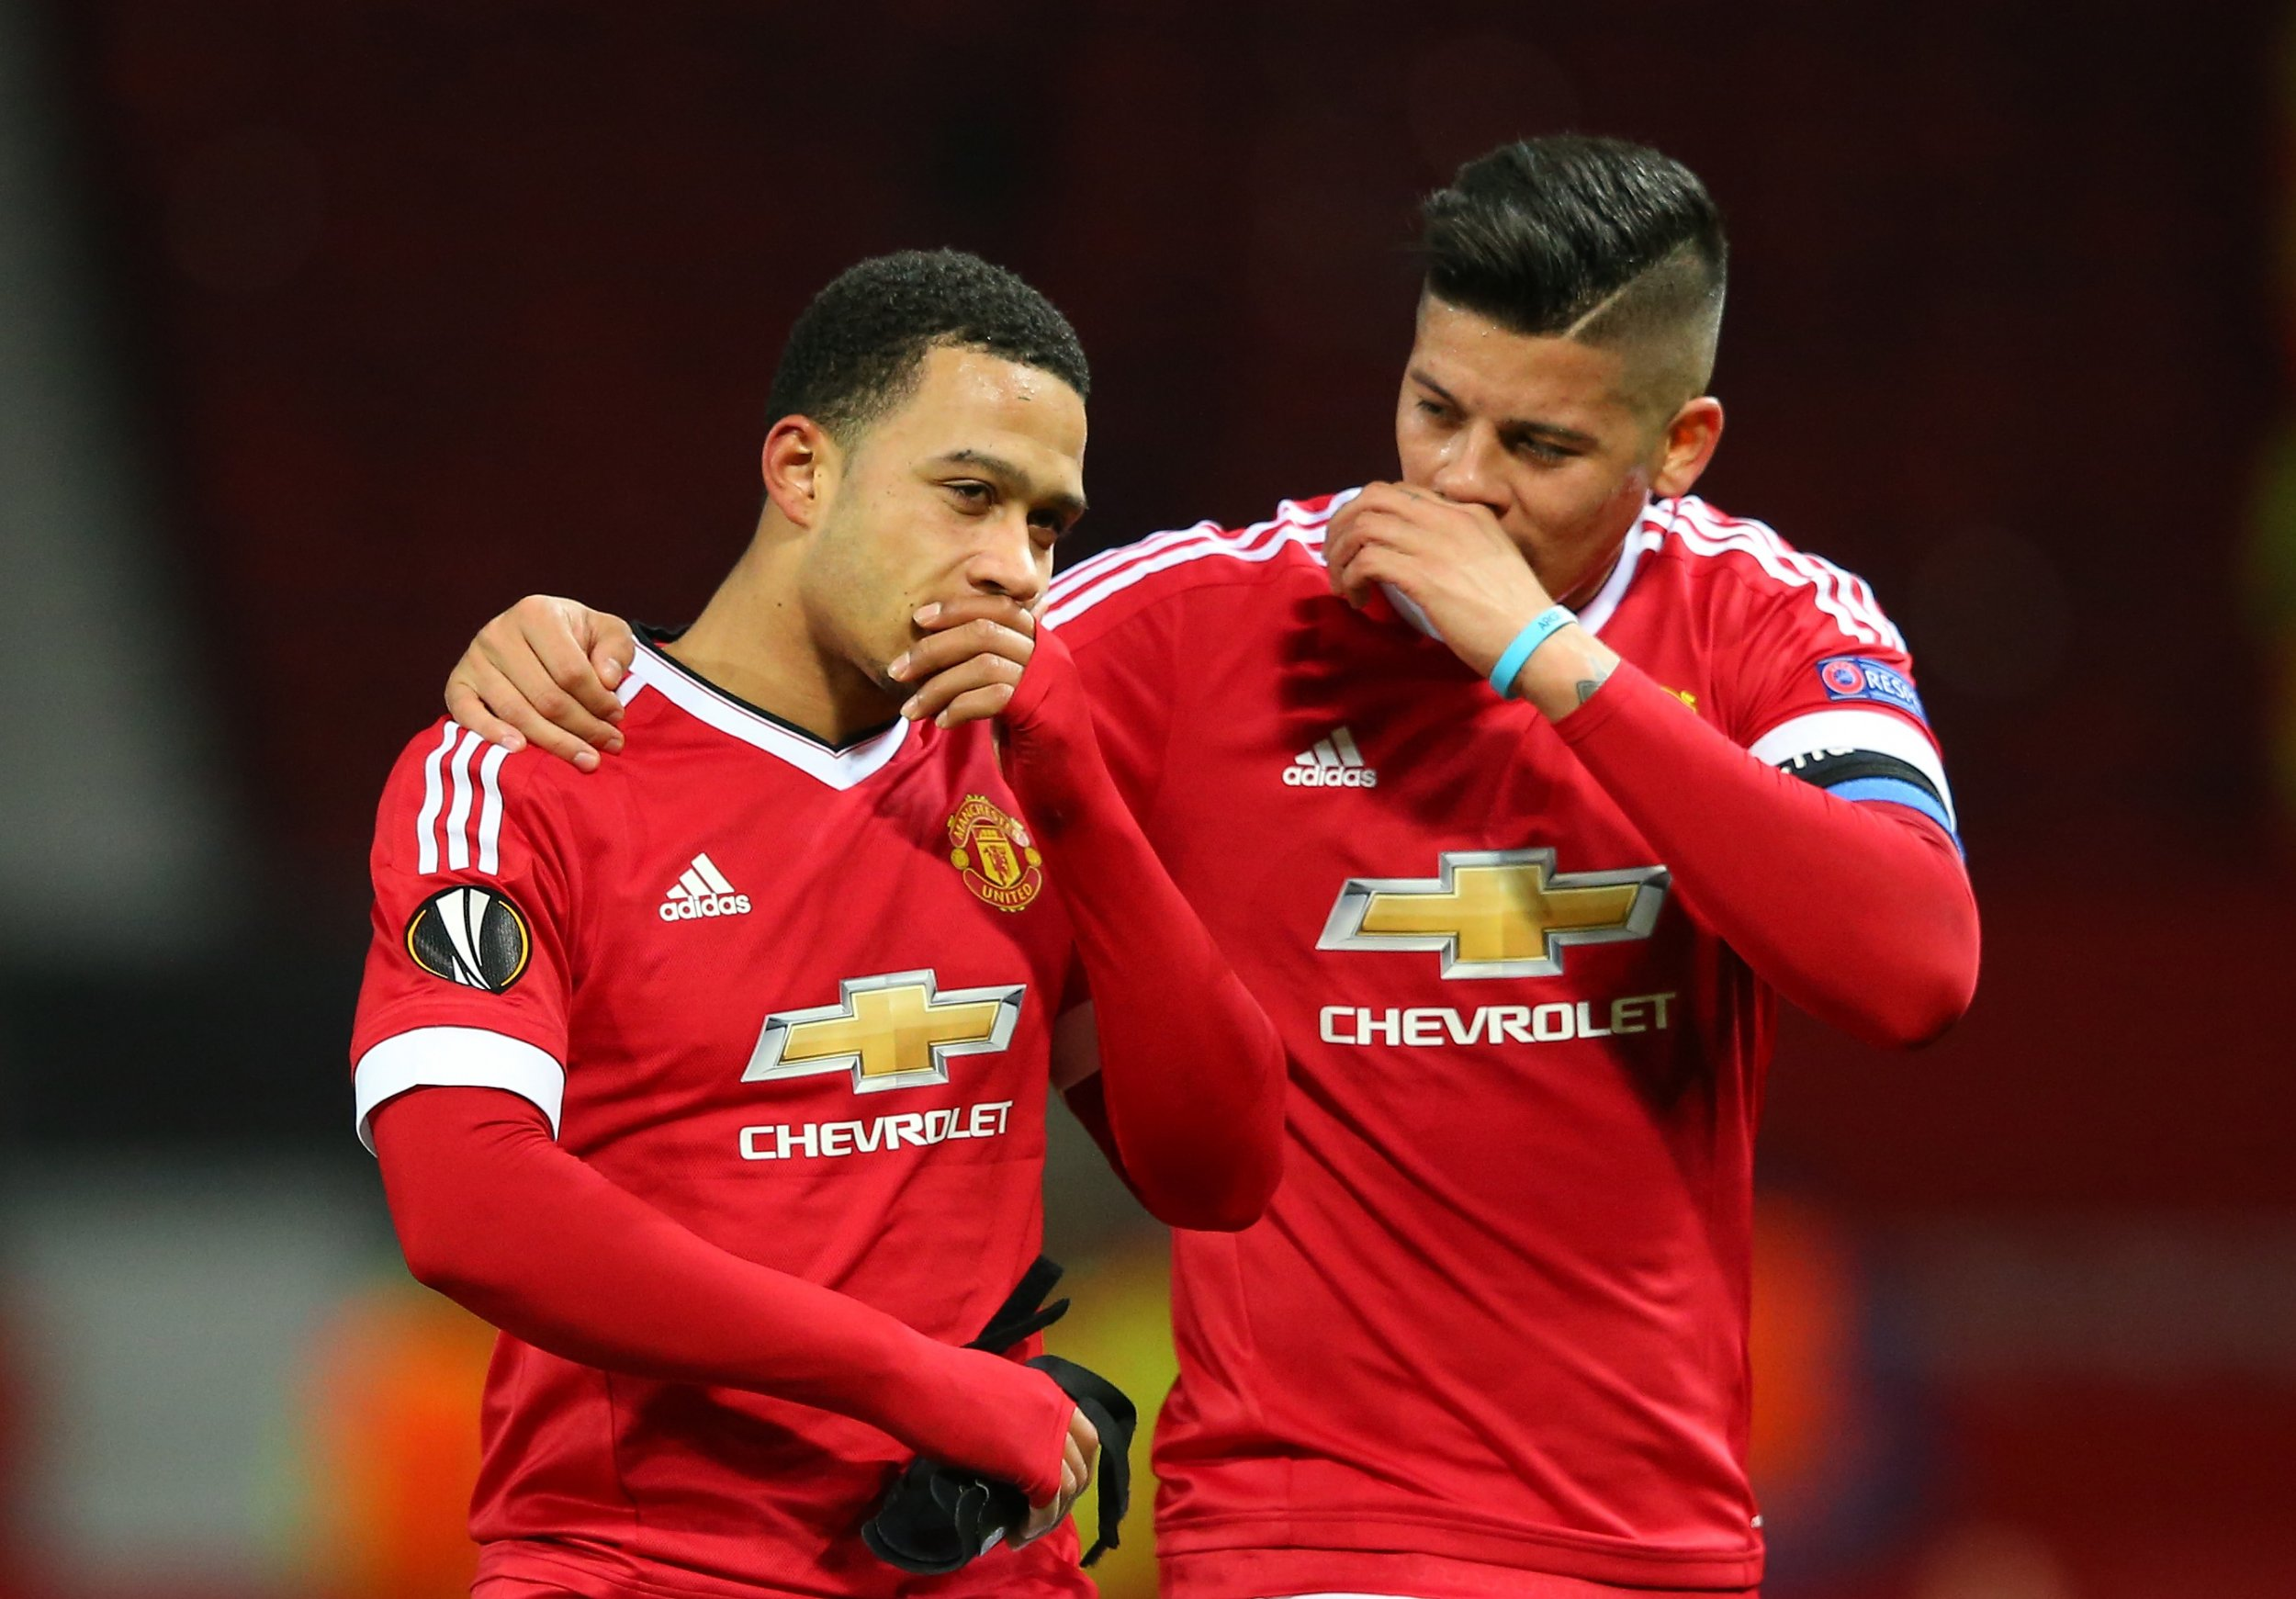 Memphis Depay, left, had his best game for Manchester United against FC Midtjylland on Thursday.